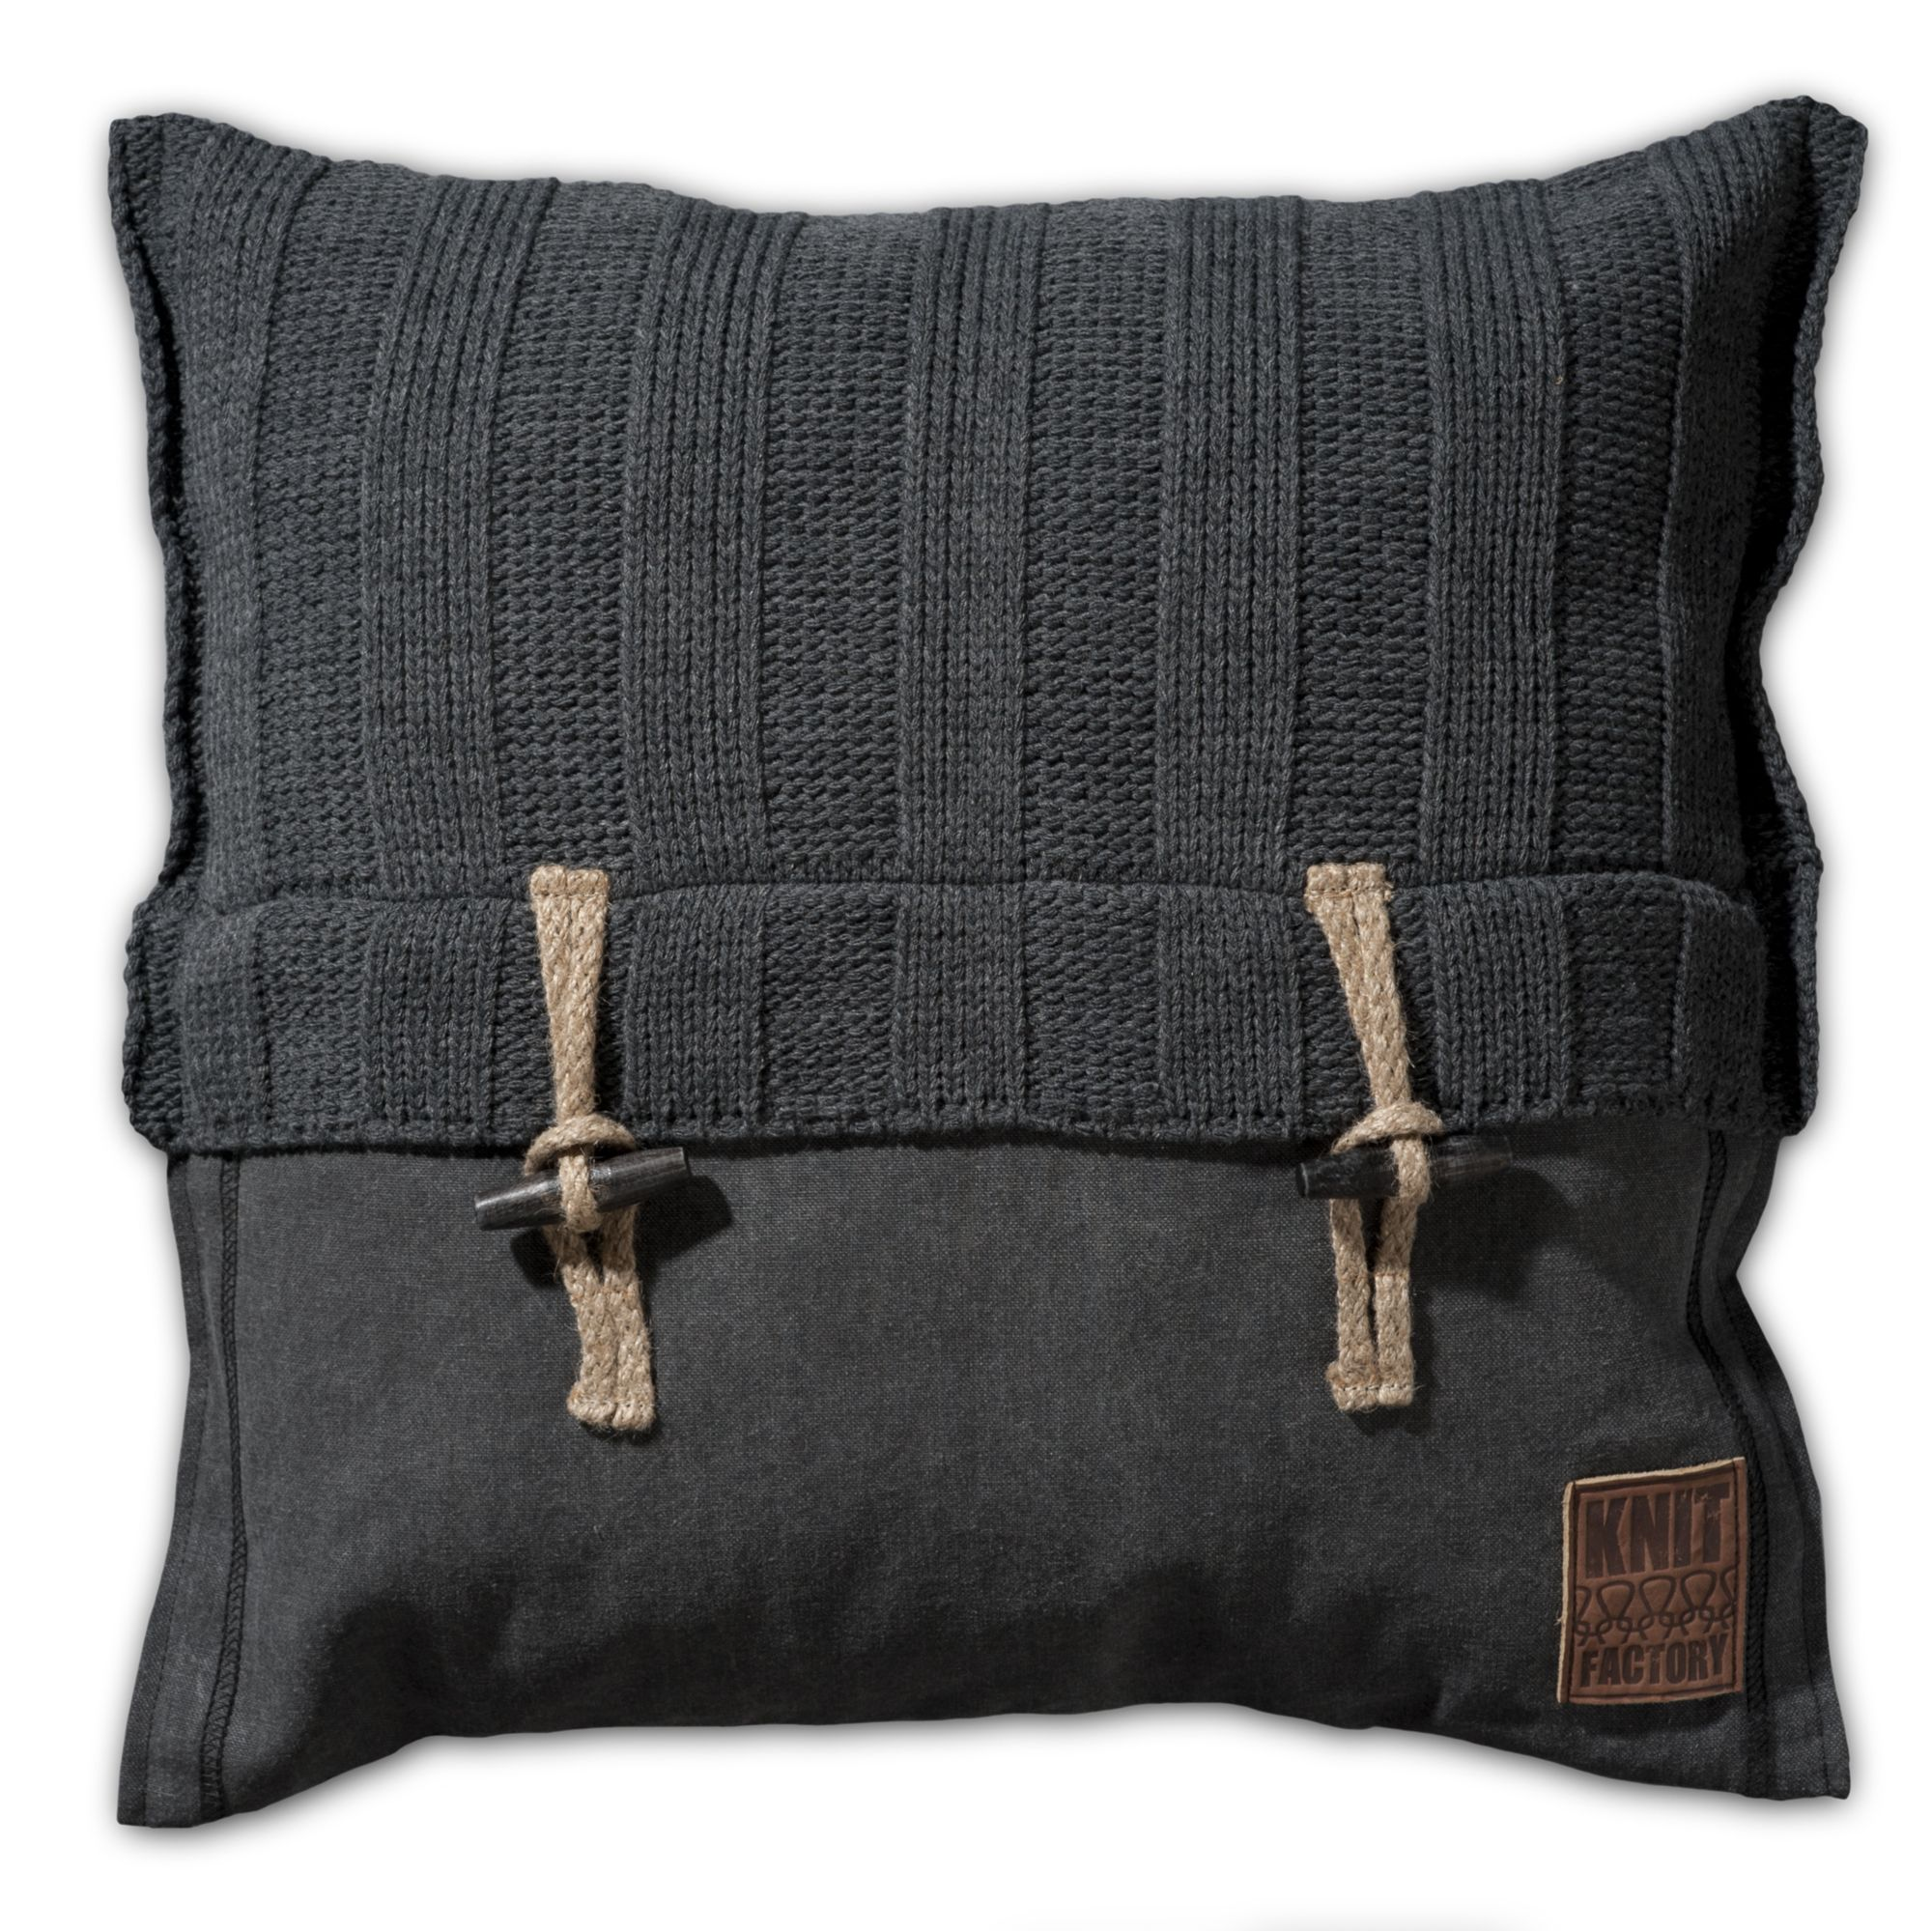 Pillow 50x50 - 6x6 Rib VZ antra by Knit Factory www.knitfactory.nl